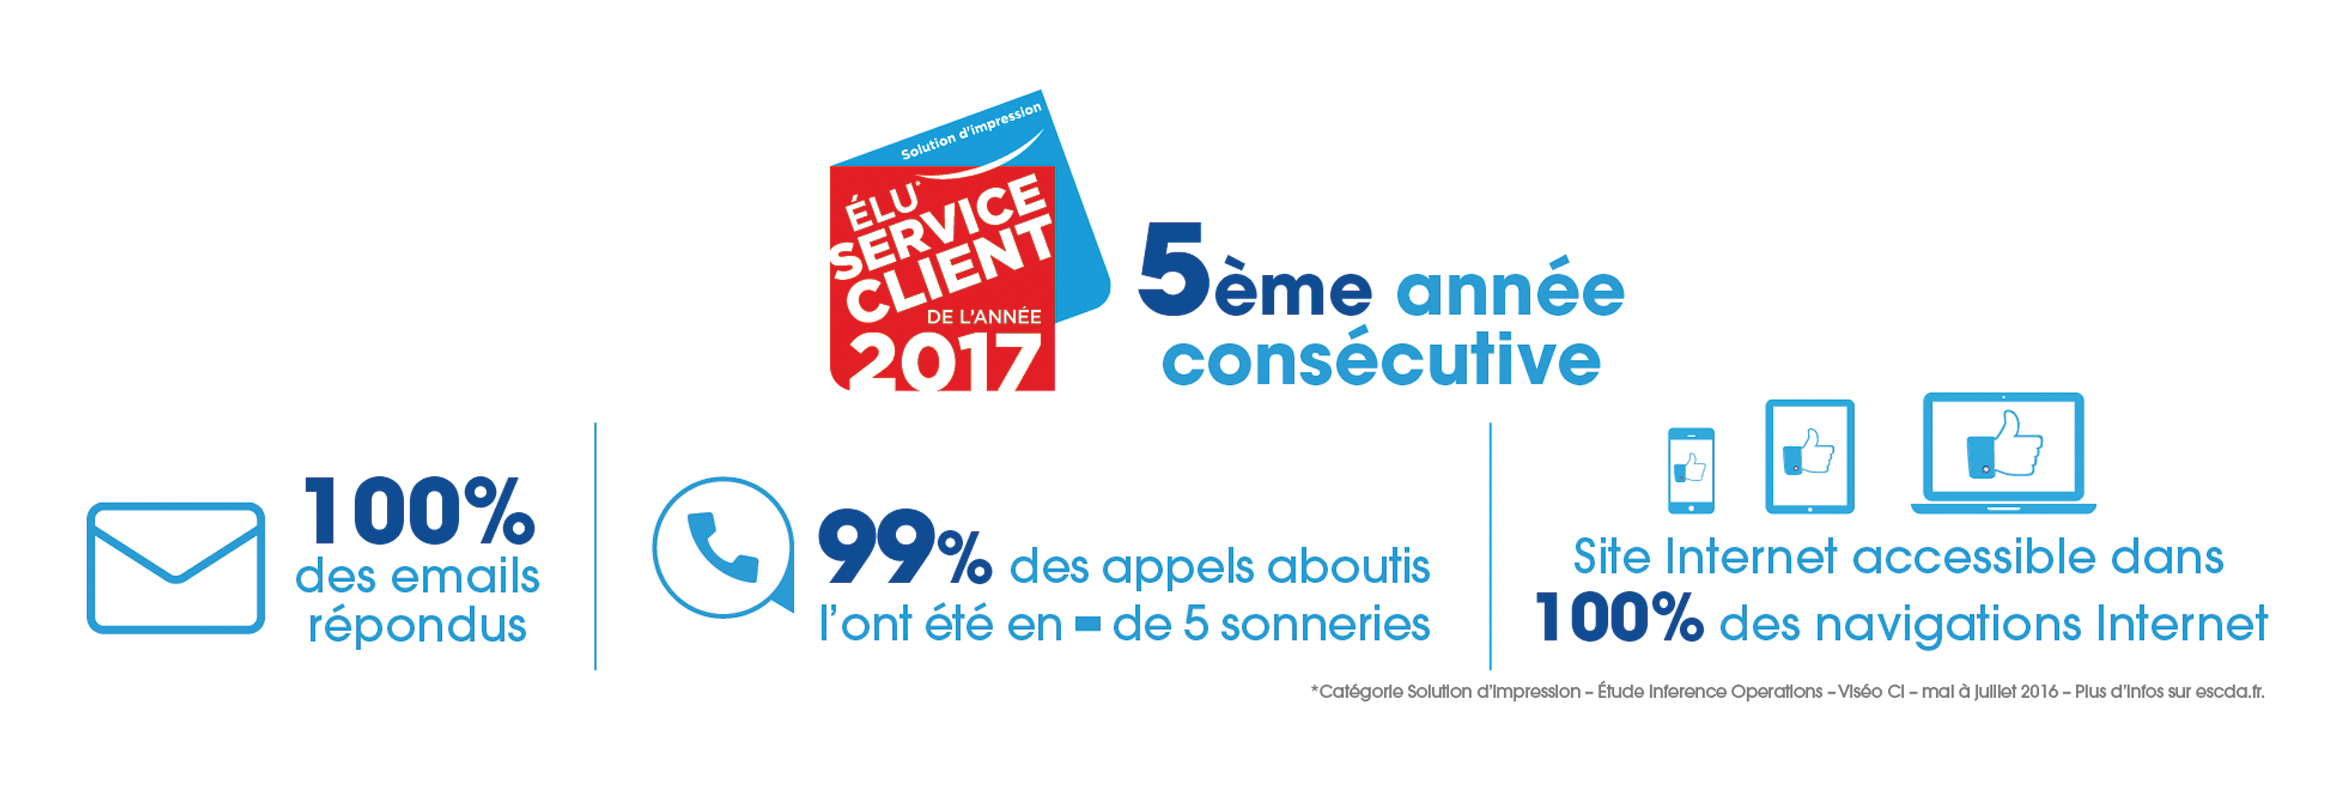 Service client 2017 - Brother France